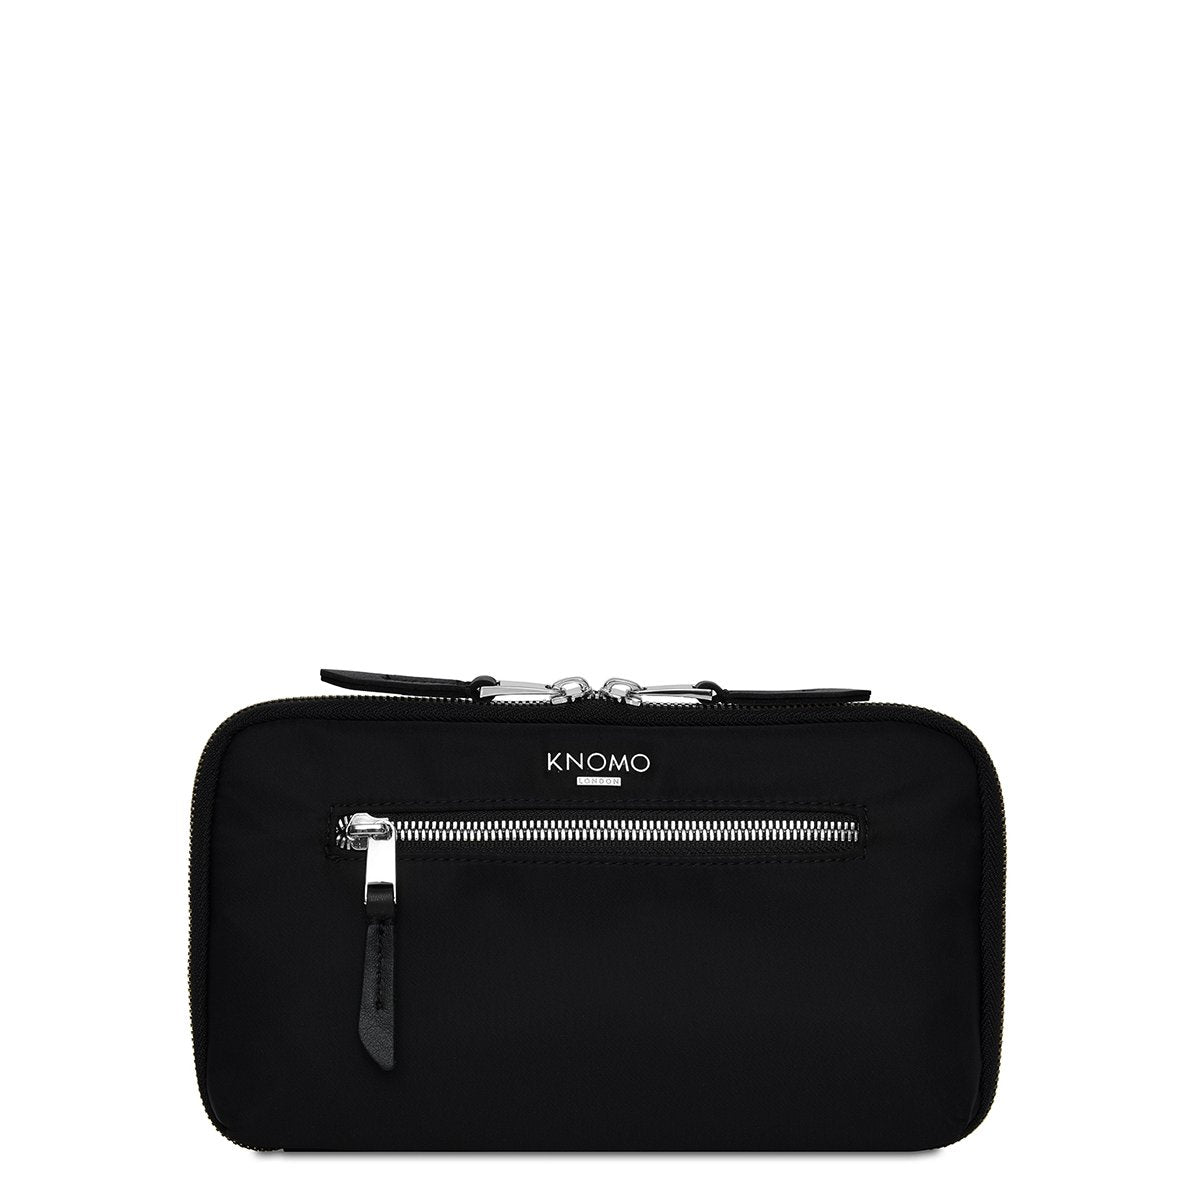 "KNOMO Knomad Travel Wallet Travel Organiser From Front 8"" -  Black 